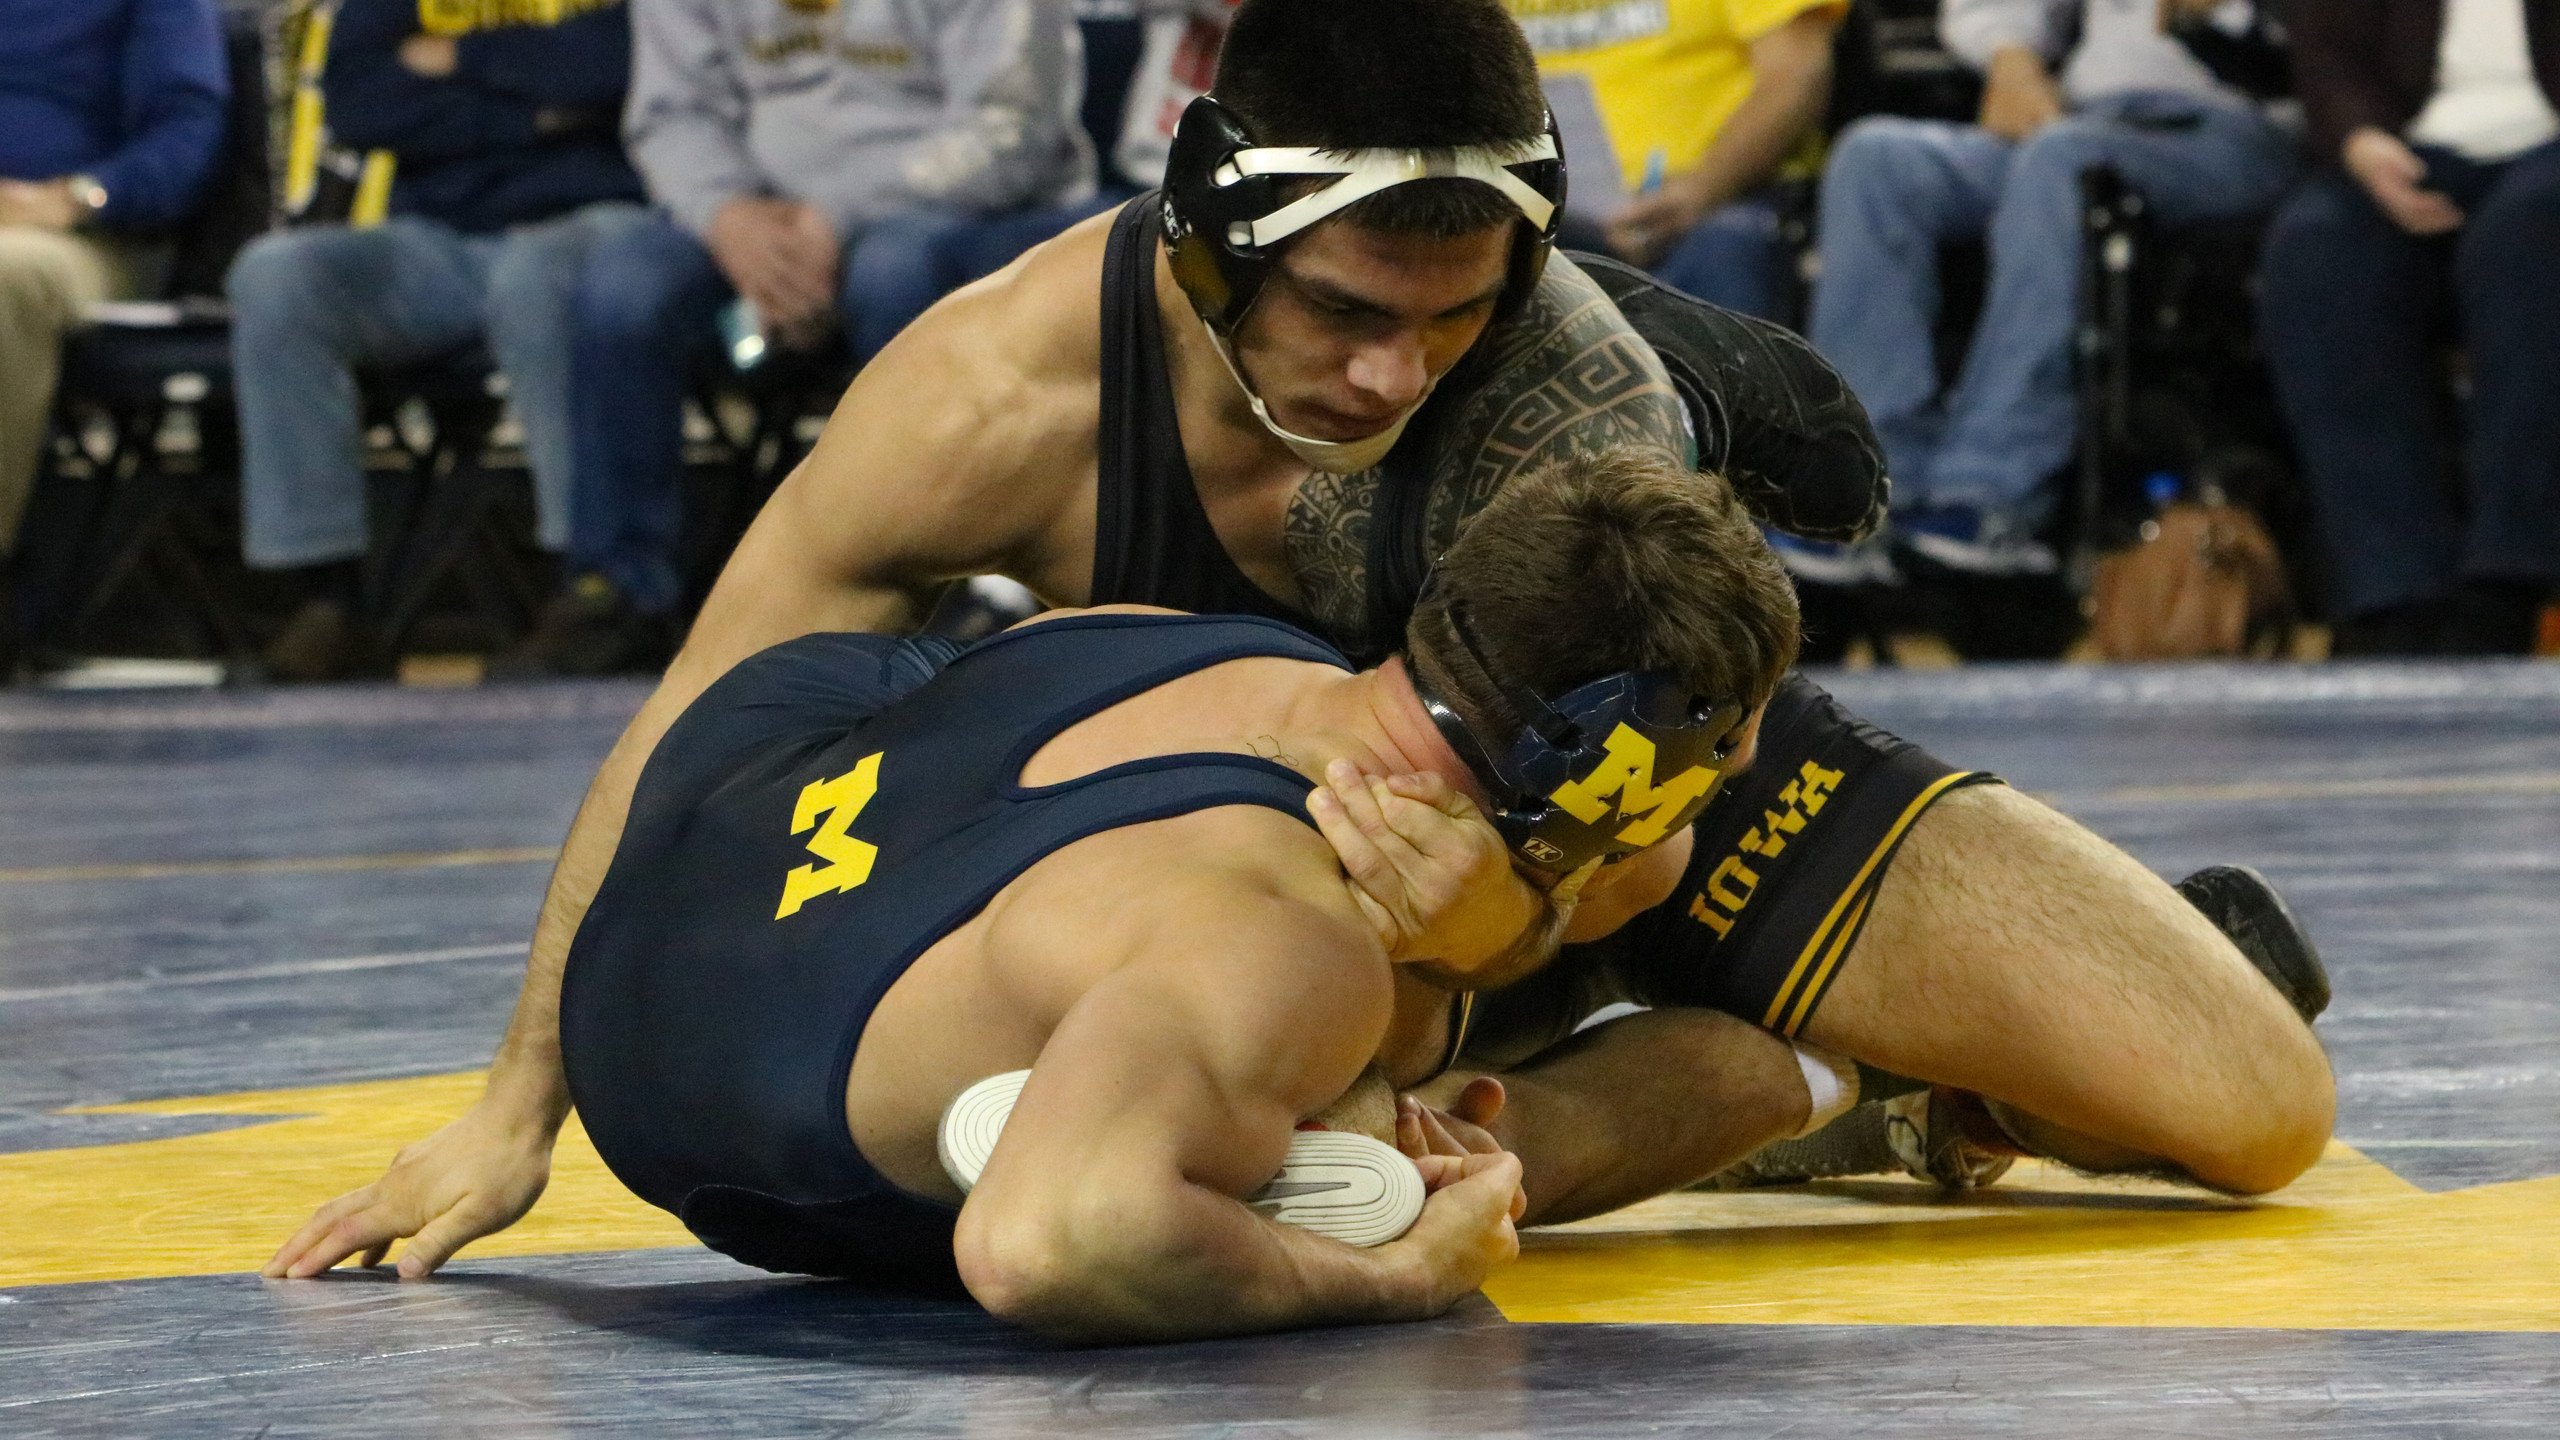 No.2 ranked Pat Lugo attempts to cradle No.9 ranked Kanen Storr of Michigan. Lugo won the match 2-0.